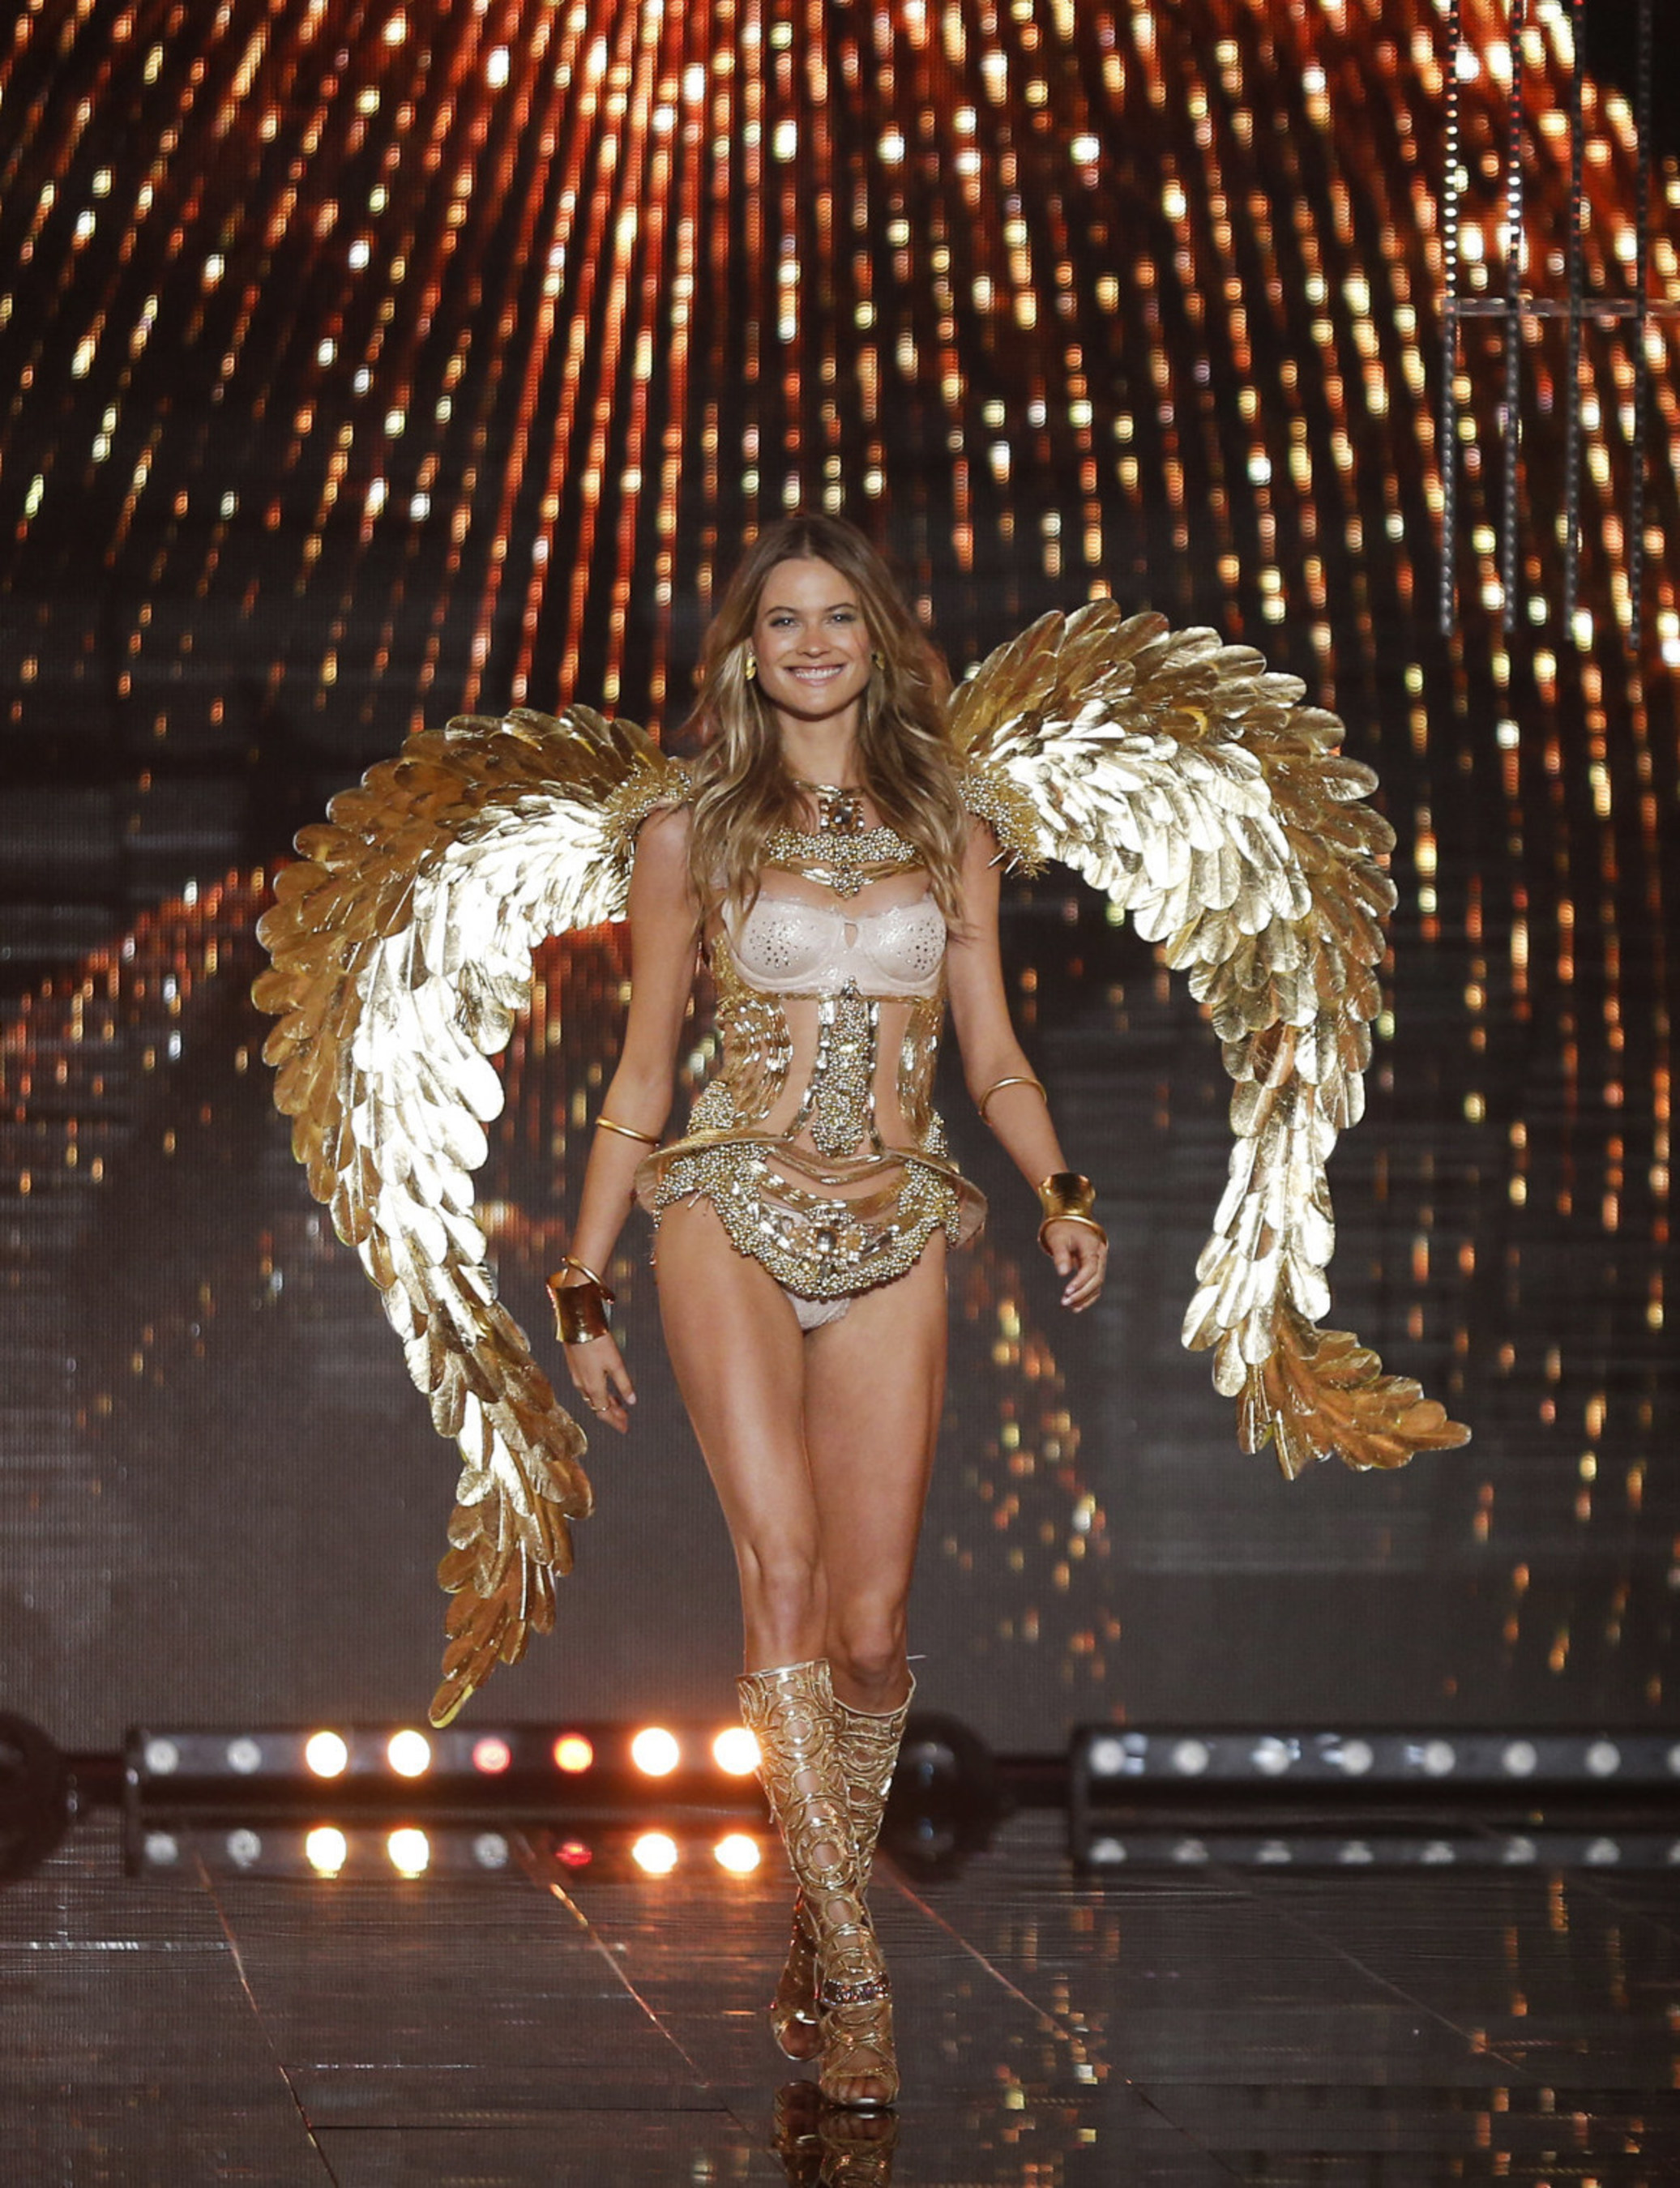 Behati Prinsloo walks the runway at the 19th annual Victoria's Secret Fashion Show in London on December 2nd, 2014.